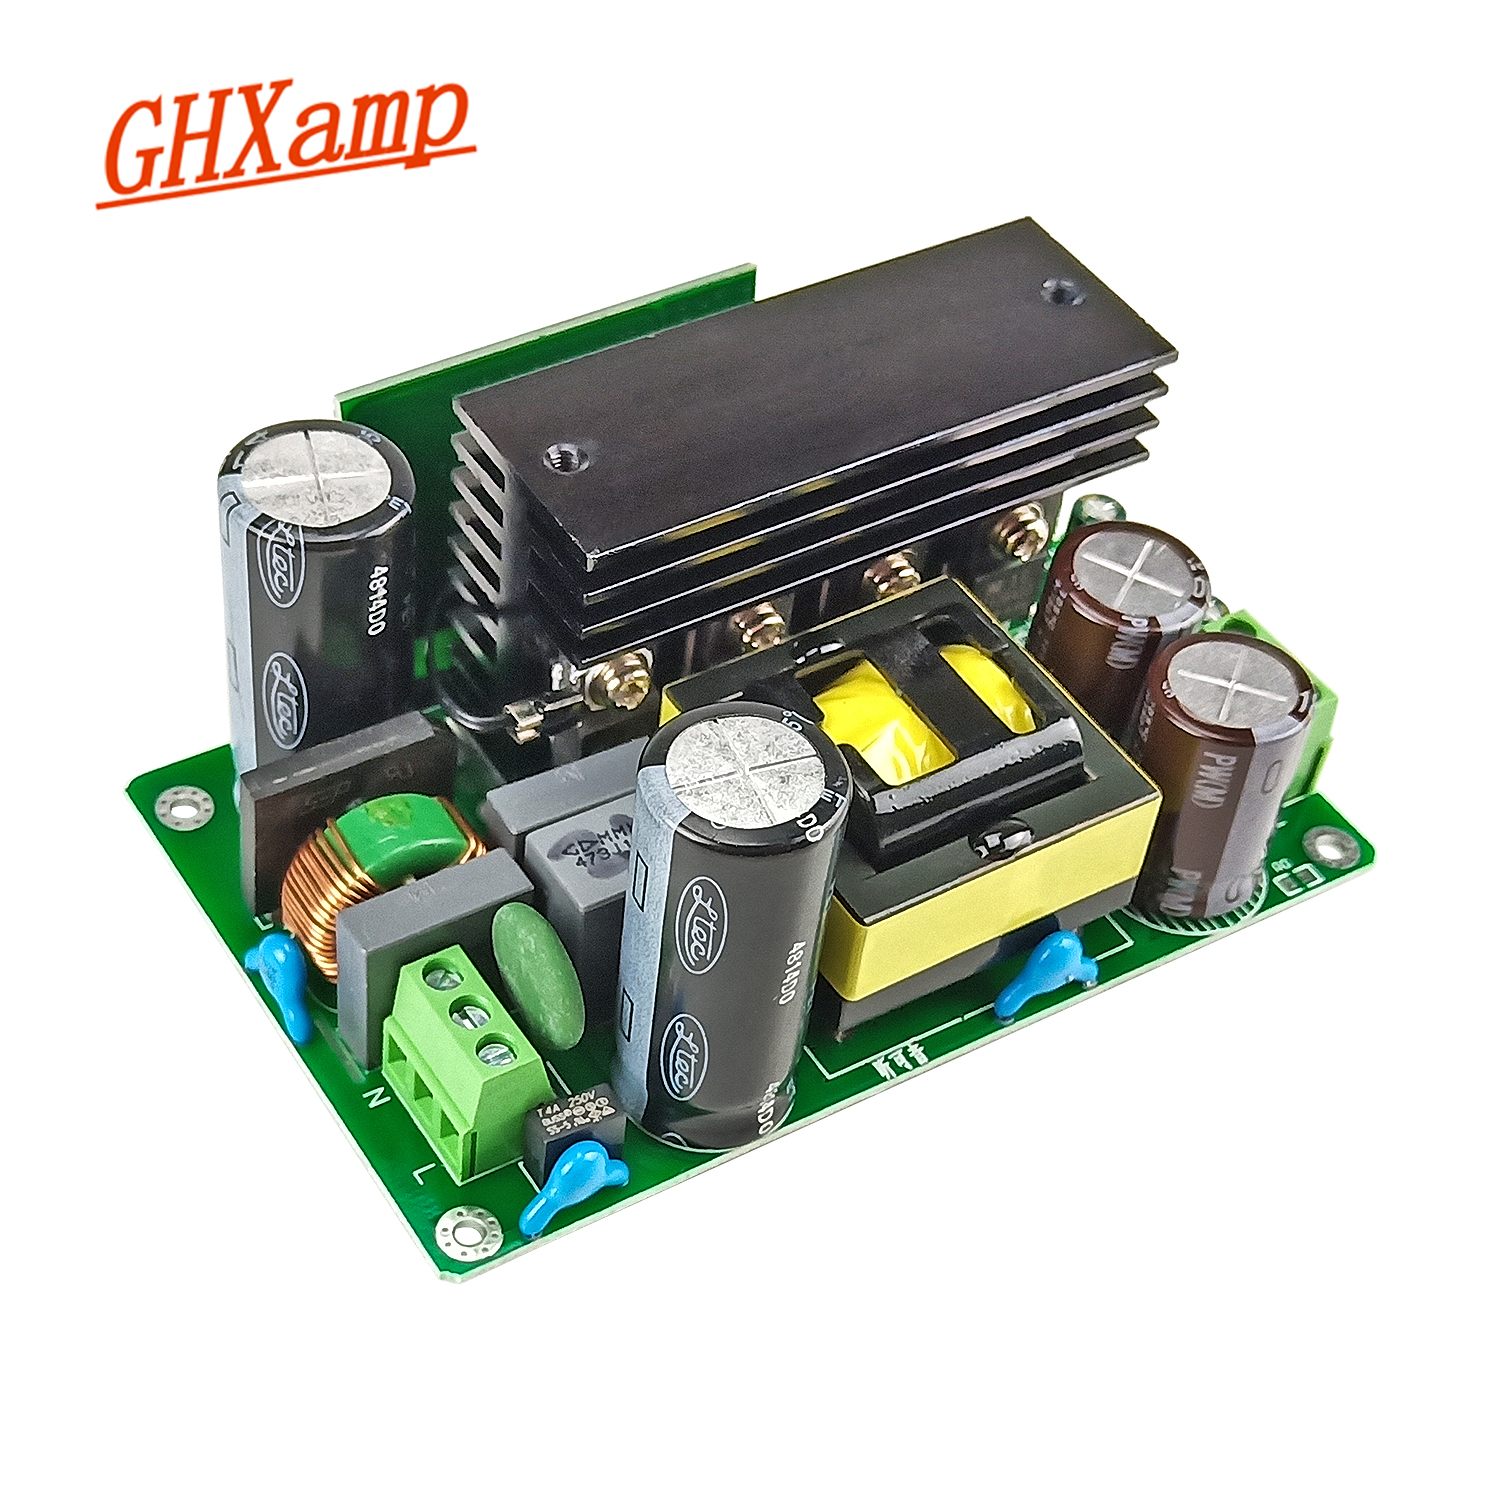 GHXAMP 500W Amplifier Switch Power Supply Dual DC 80V 24V 36V 48V 60V LLC Soft Switch Technology Replace Ring Cow Upgrade 1PCS